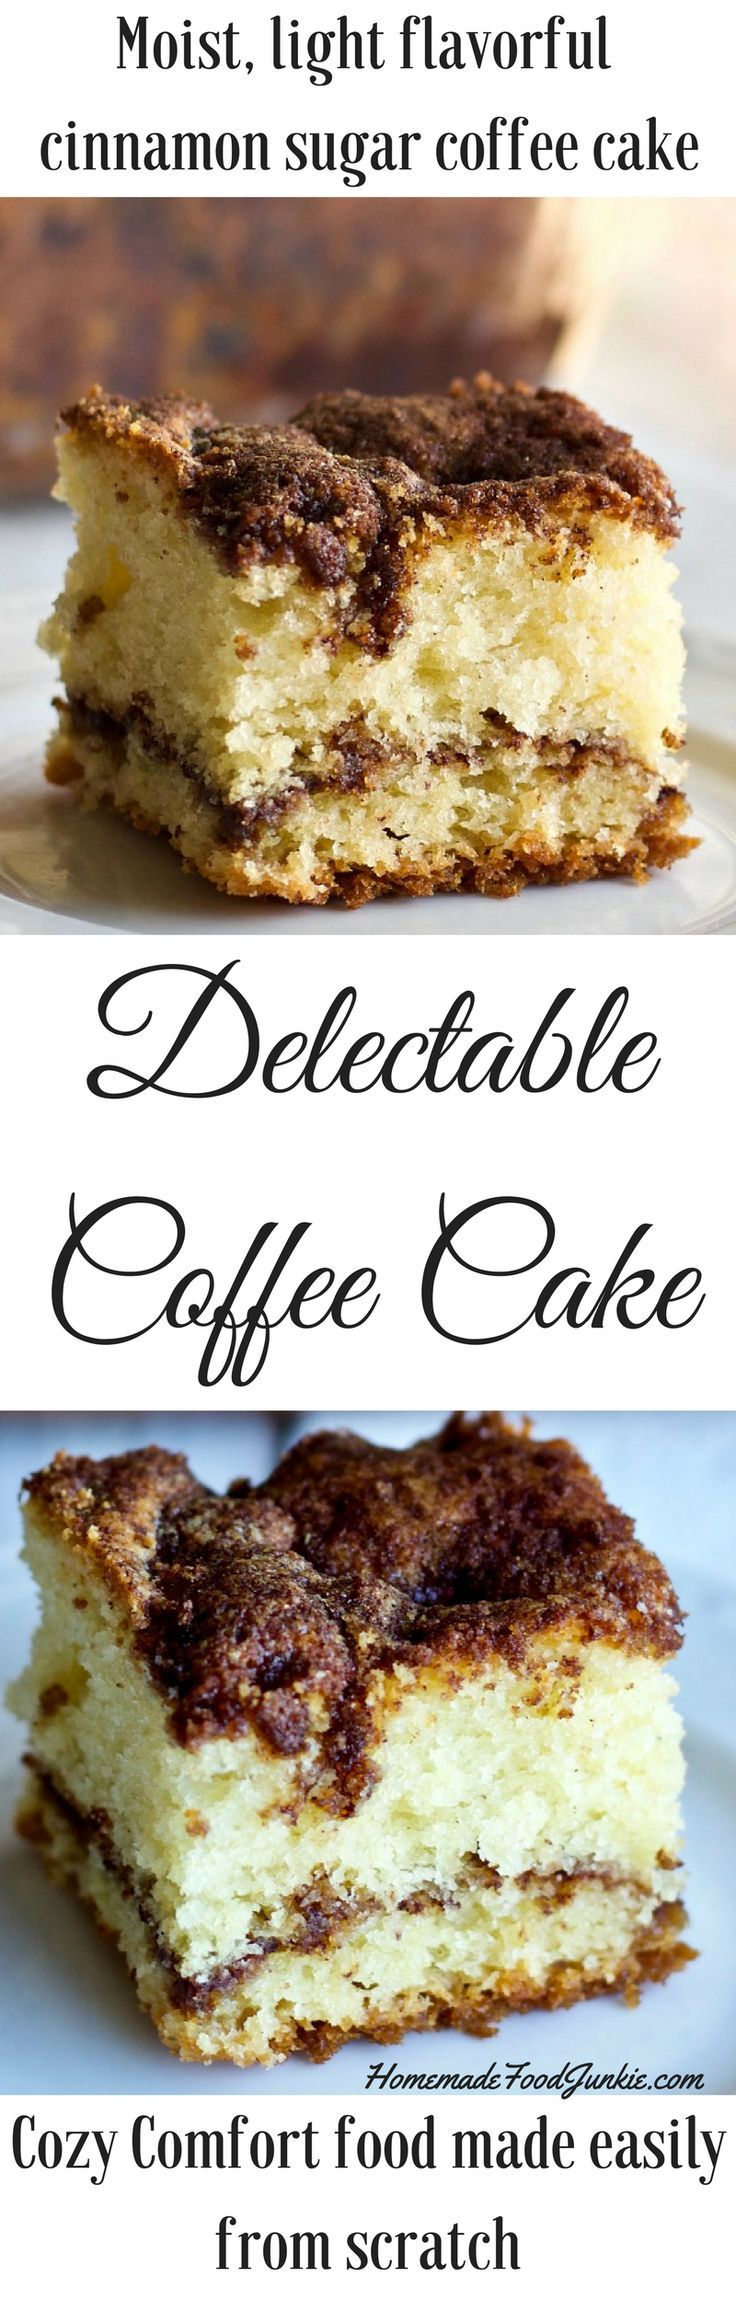 Delectable Coffee Cake is a moist light coffee cake with a cinnamon sugar streusel made entirely from scratch with coconut oil.